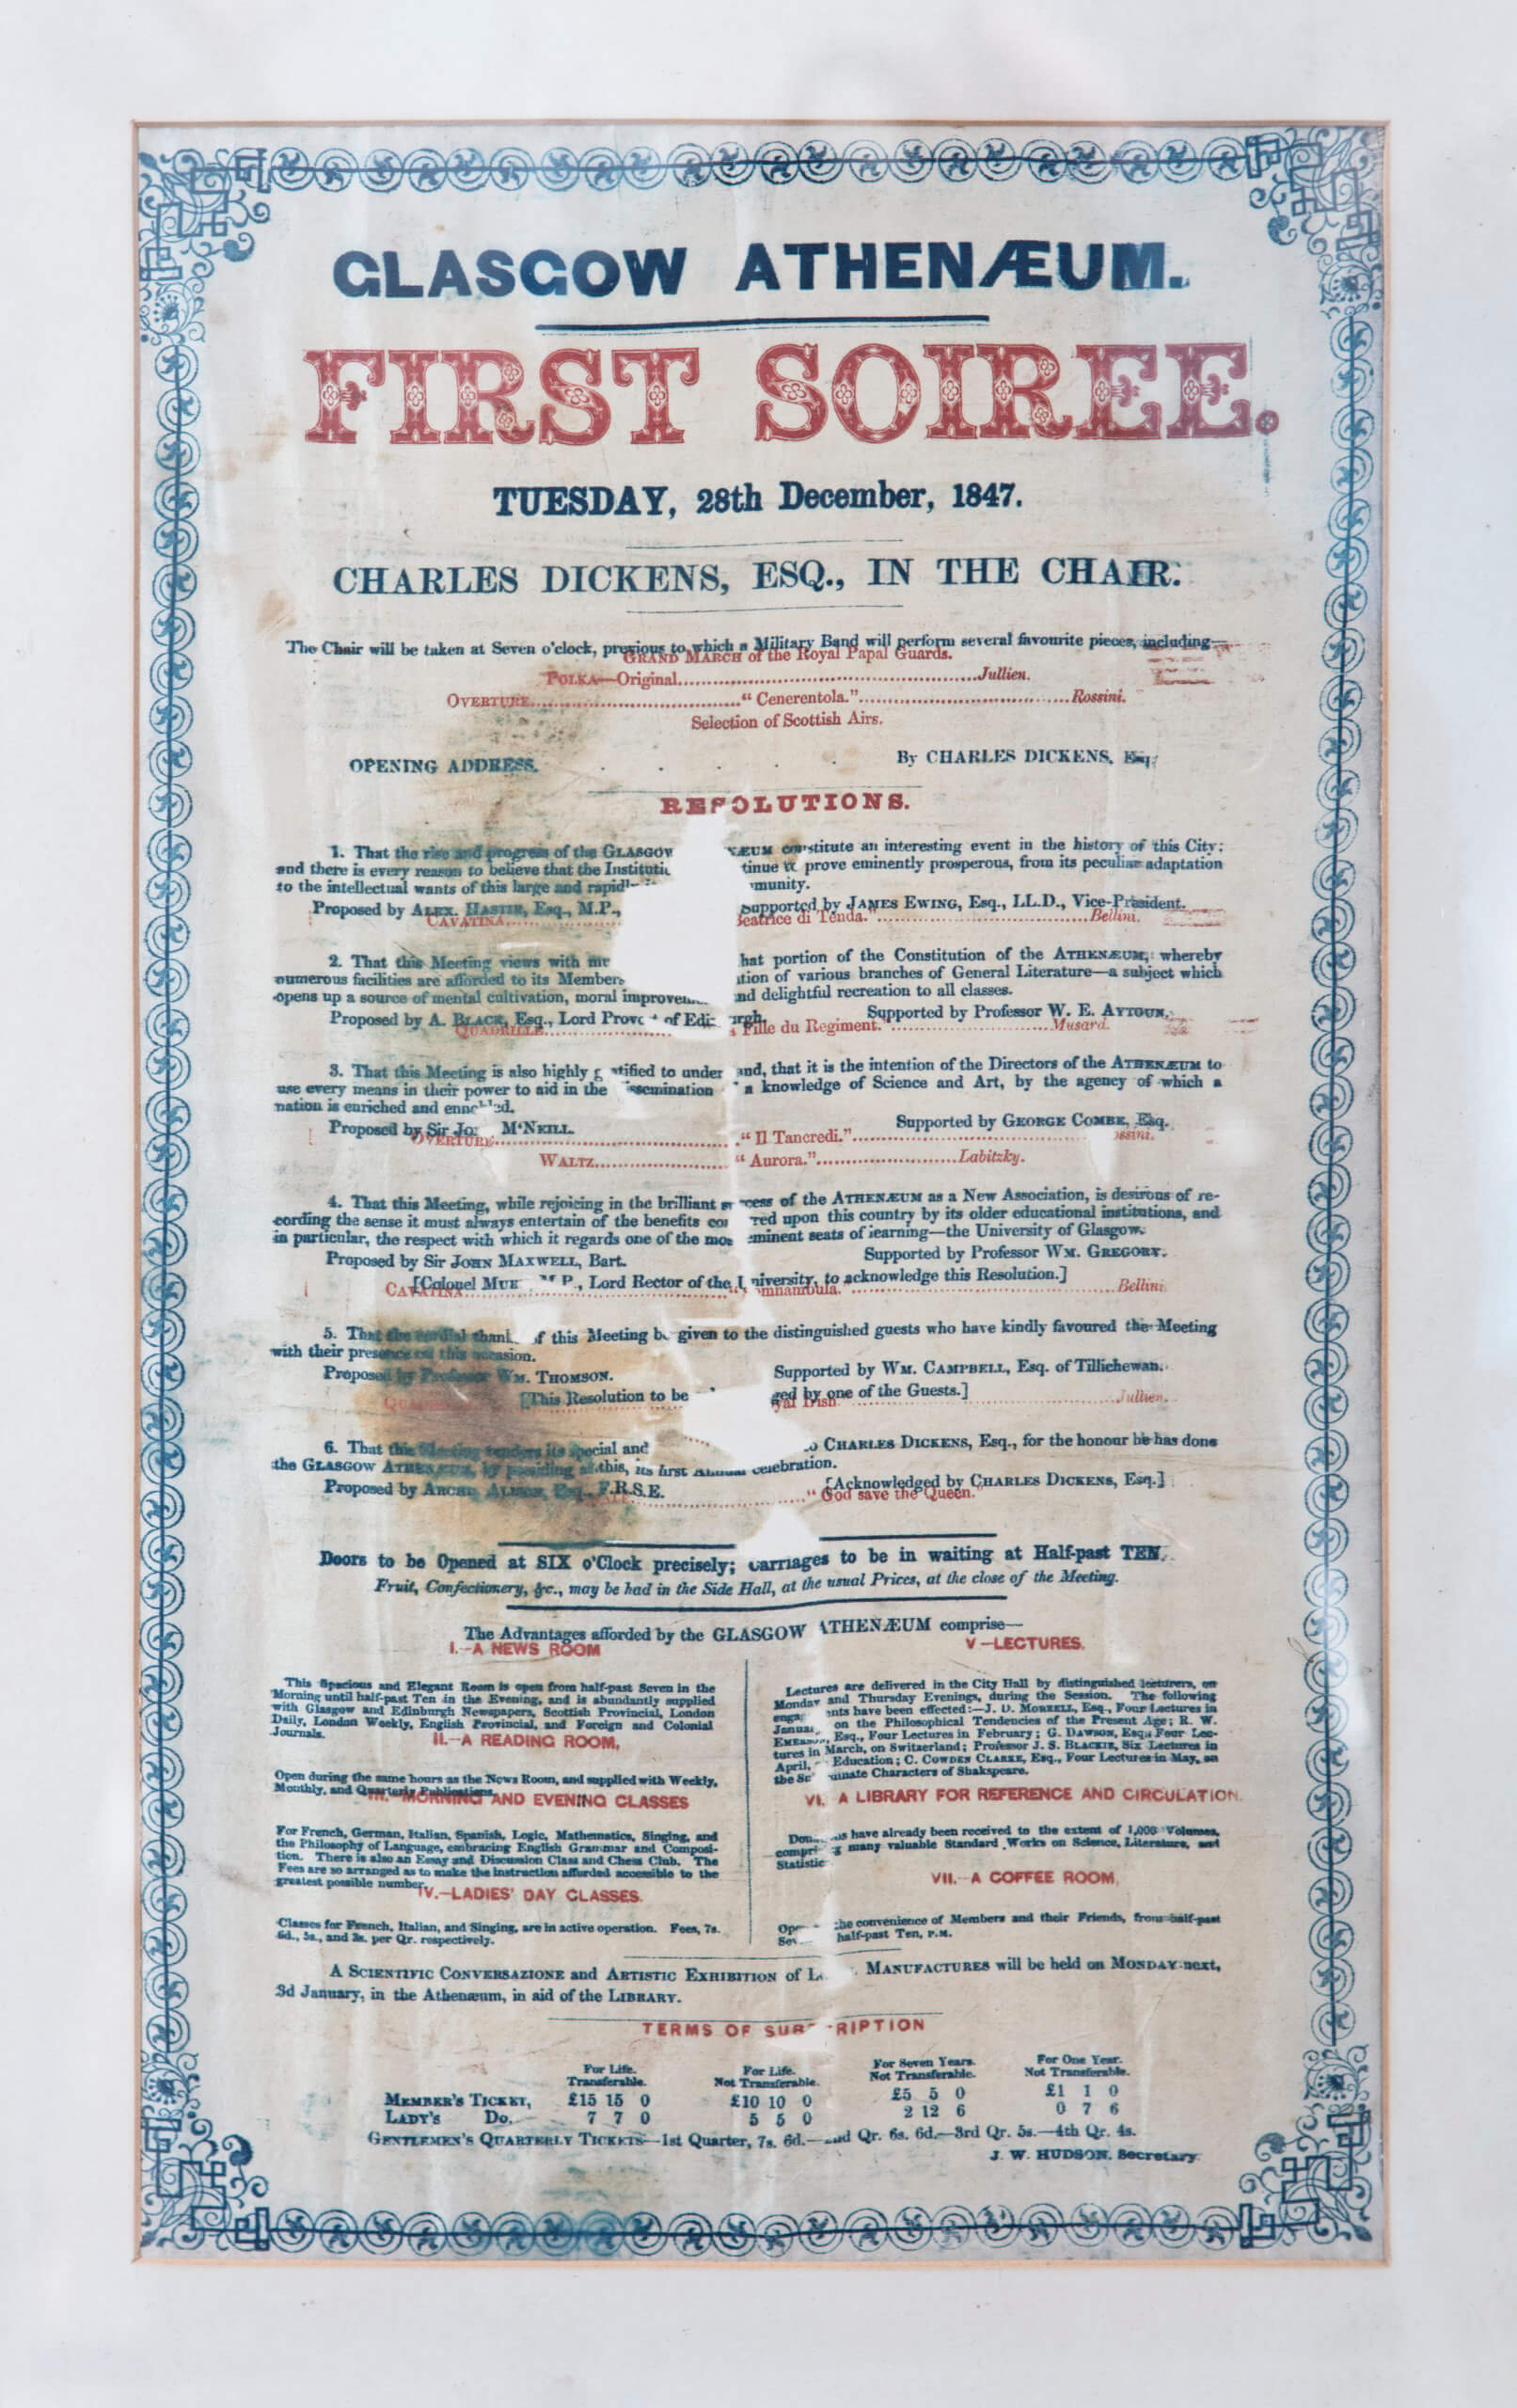 A poster for the Glasgow Athenaeum's first soiree in December 1847 in the RCS archive